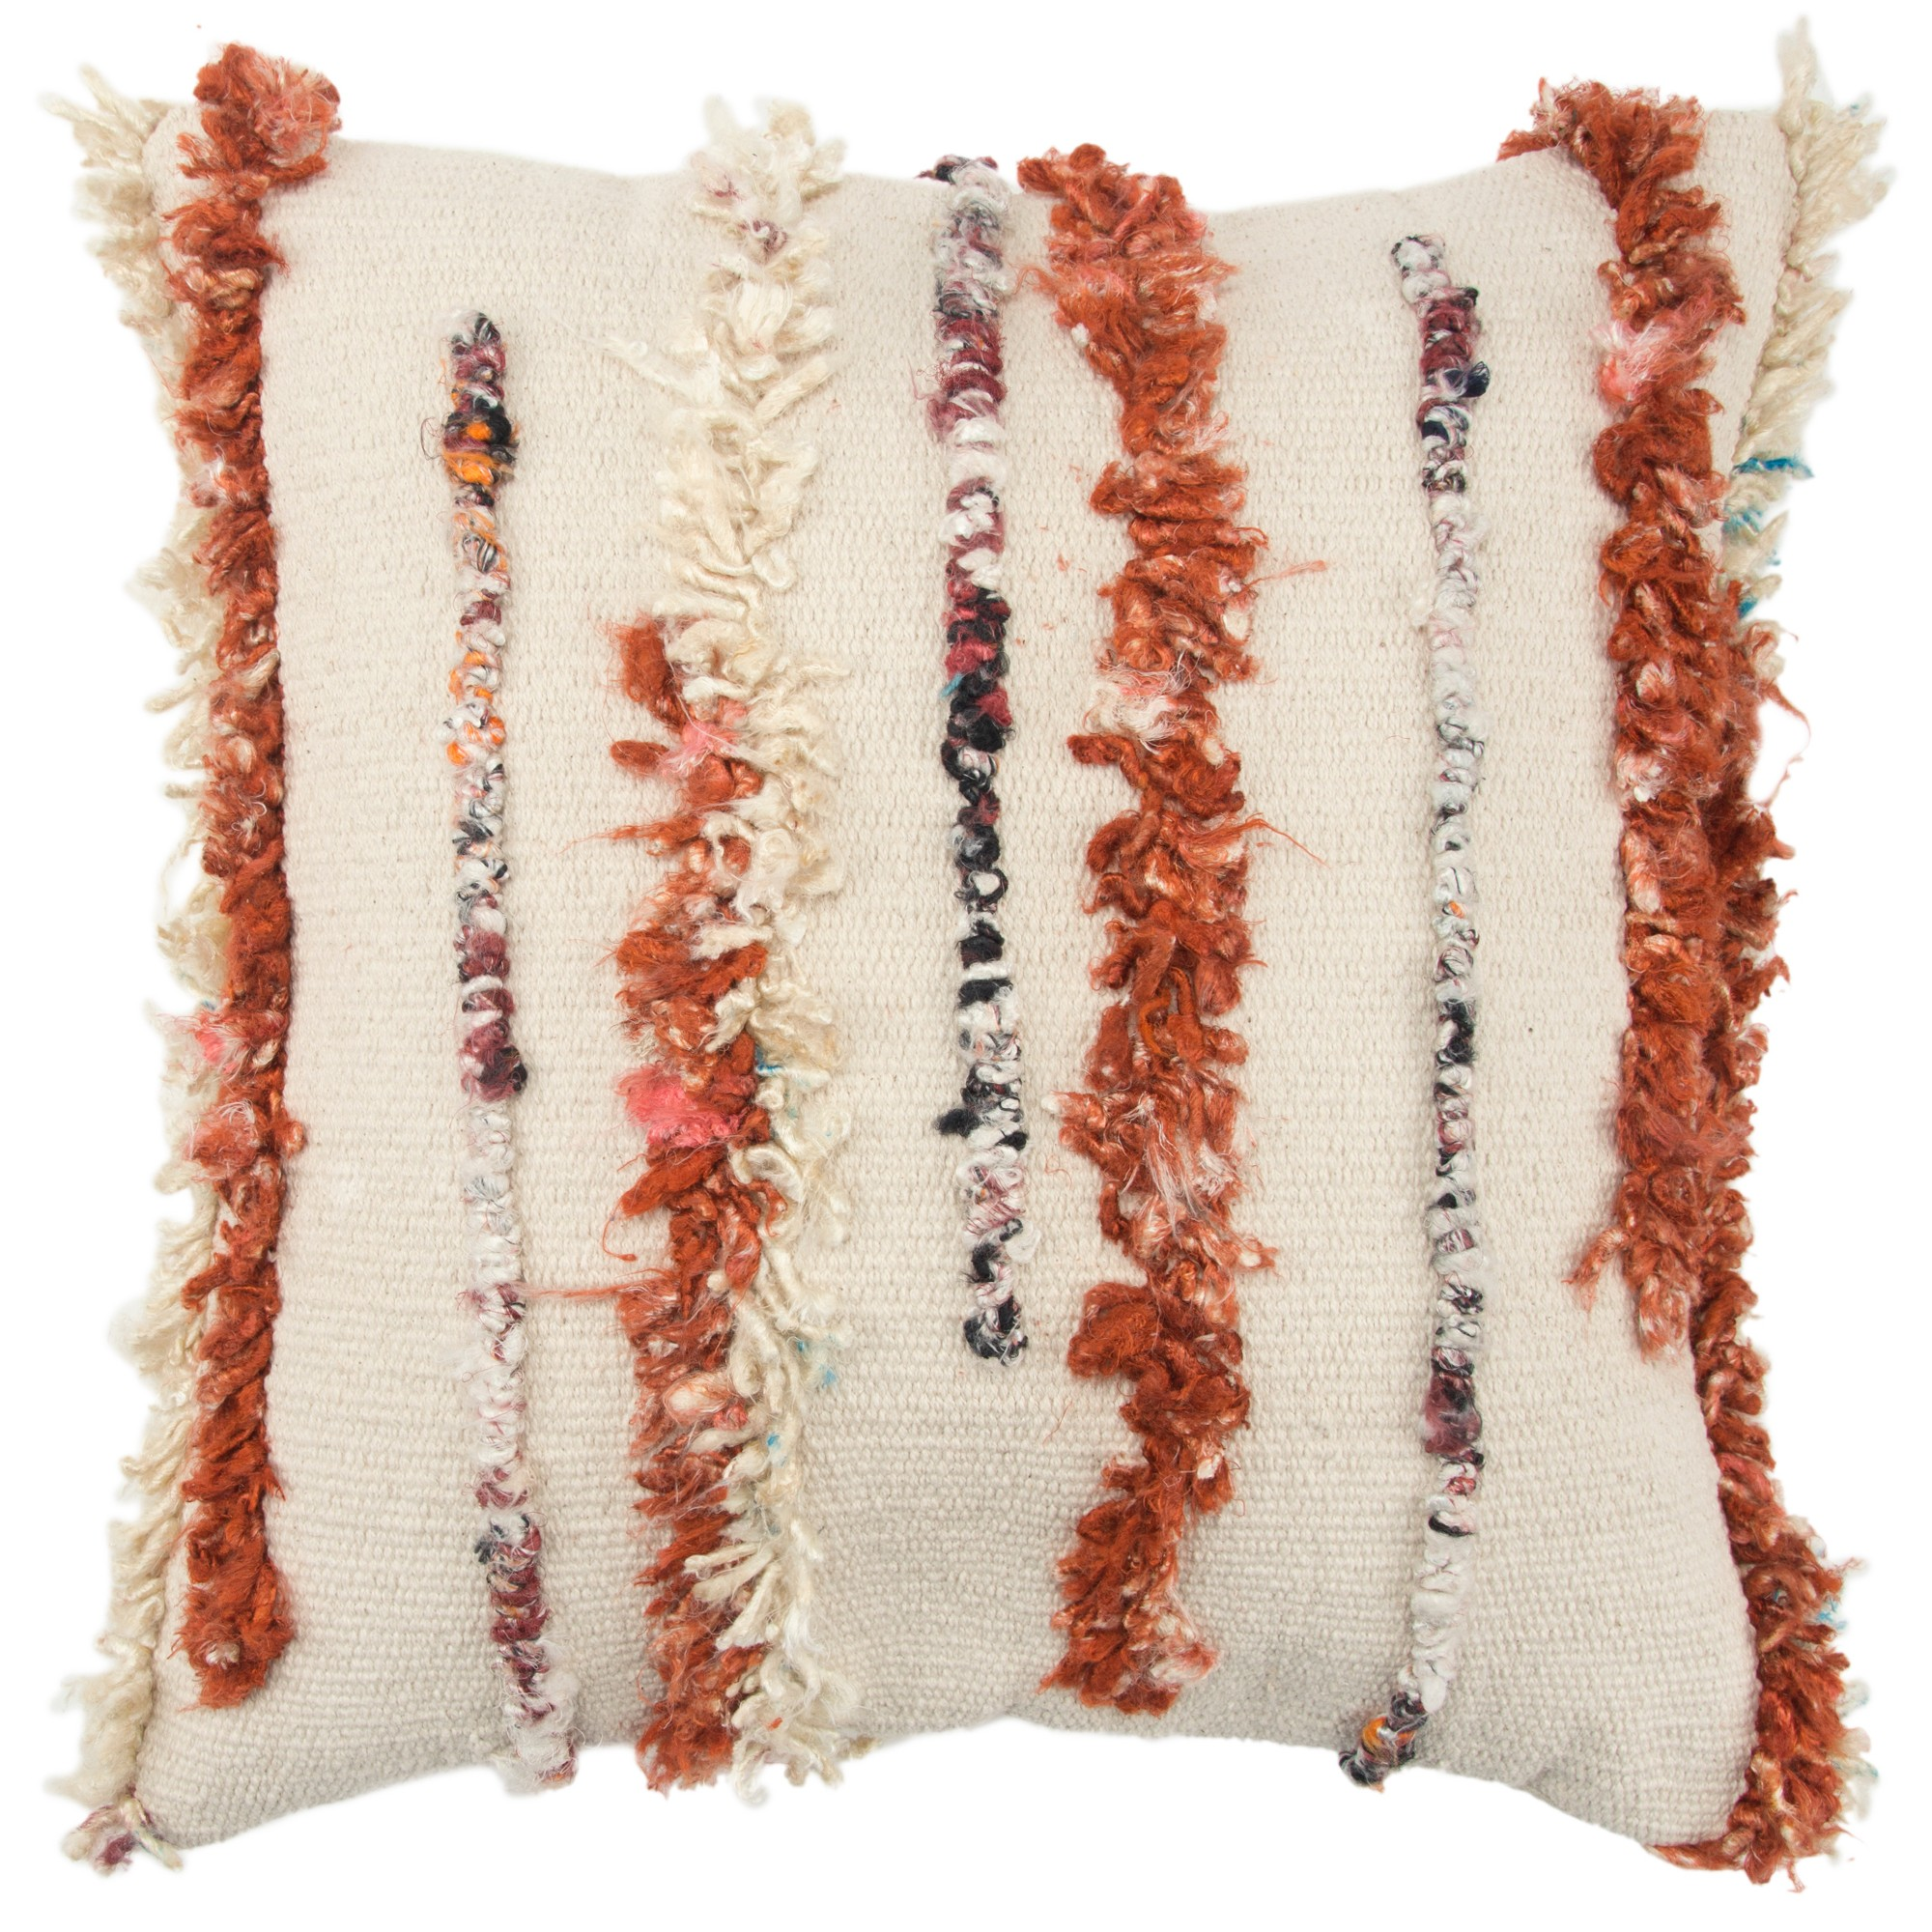 Stripe Decorative Filled Oversize Square Throw Pillow Orange - Rizzy Home